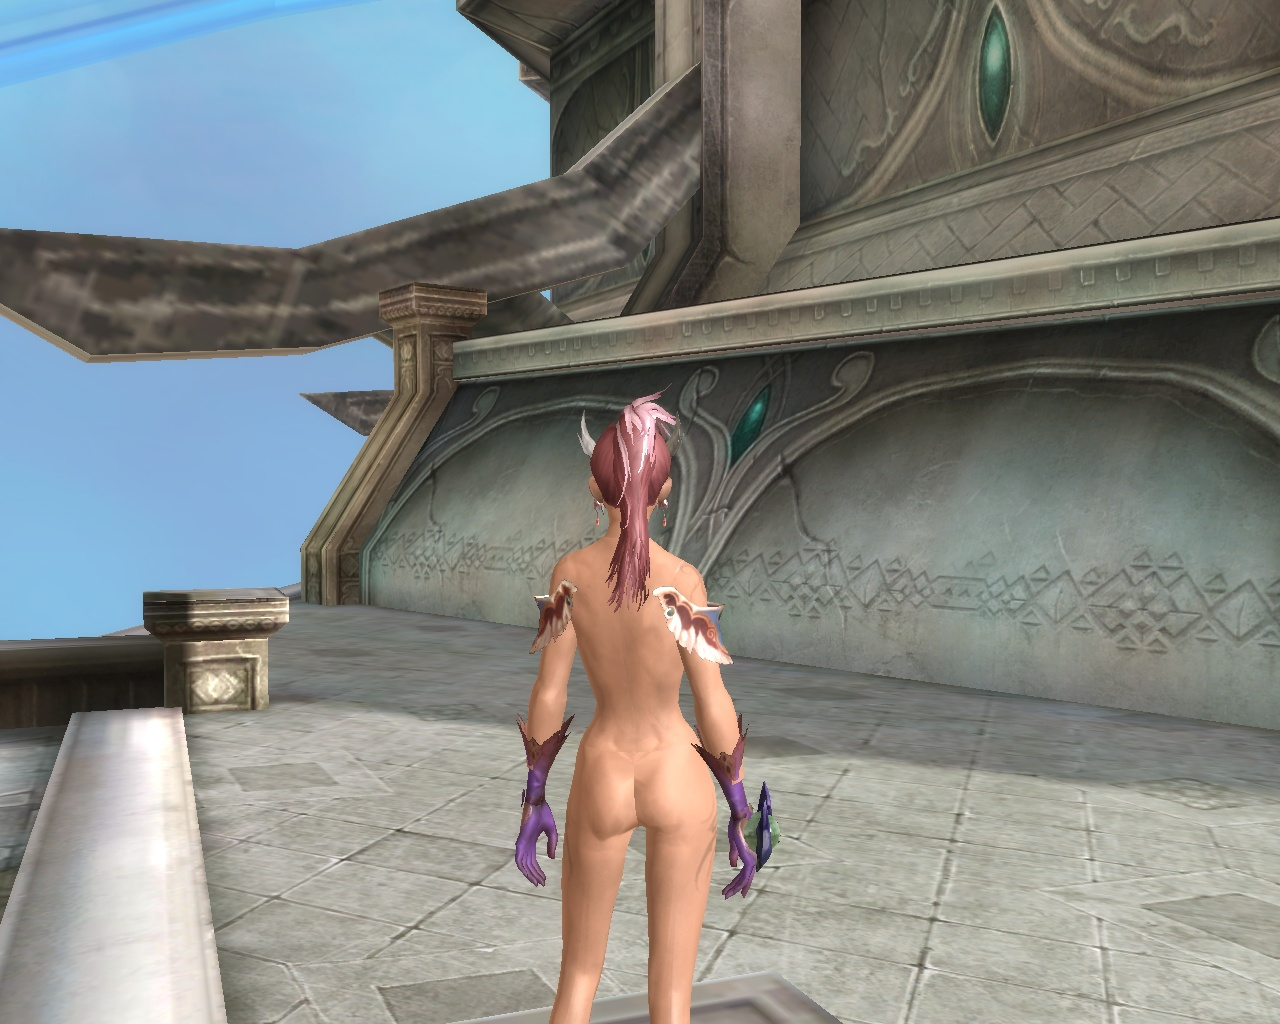 Aion porno video hentai pictures